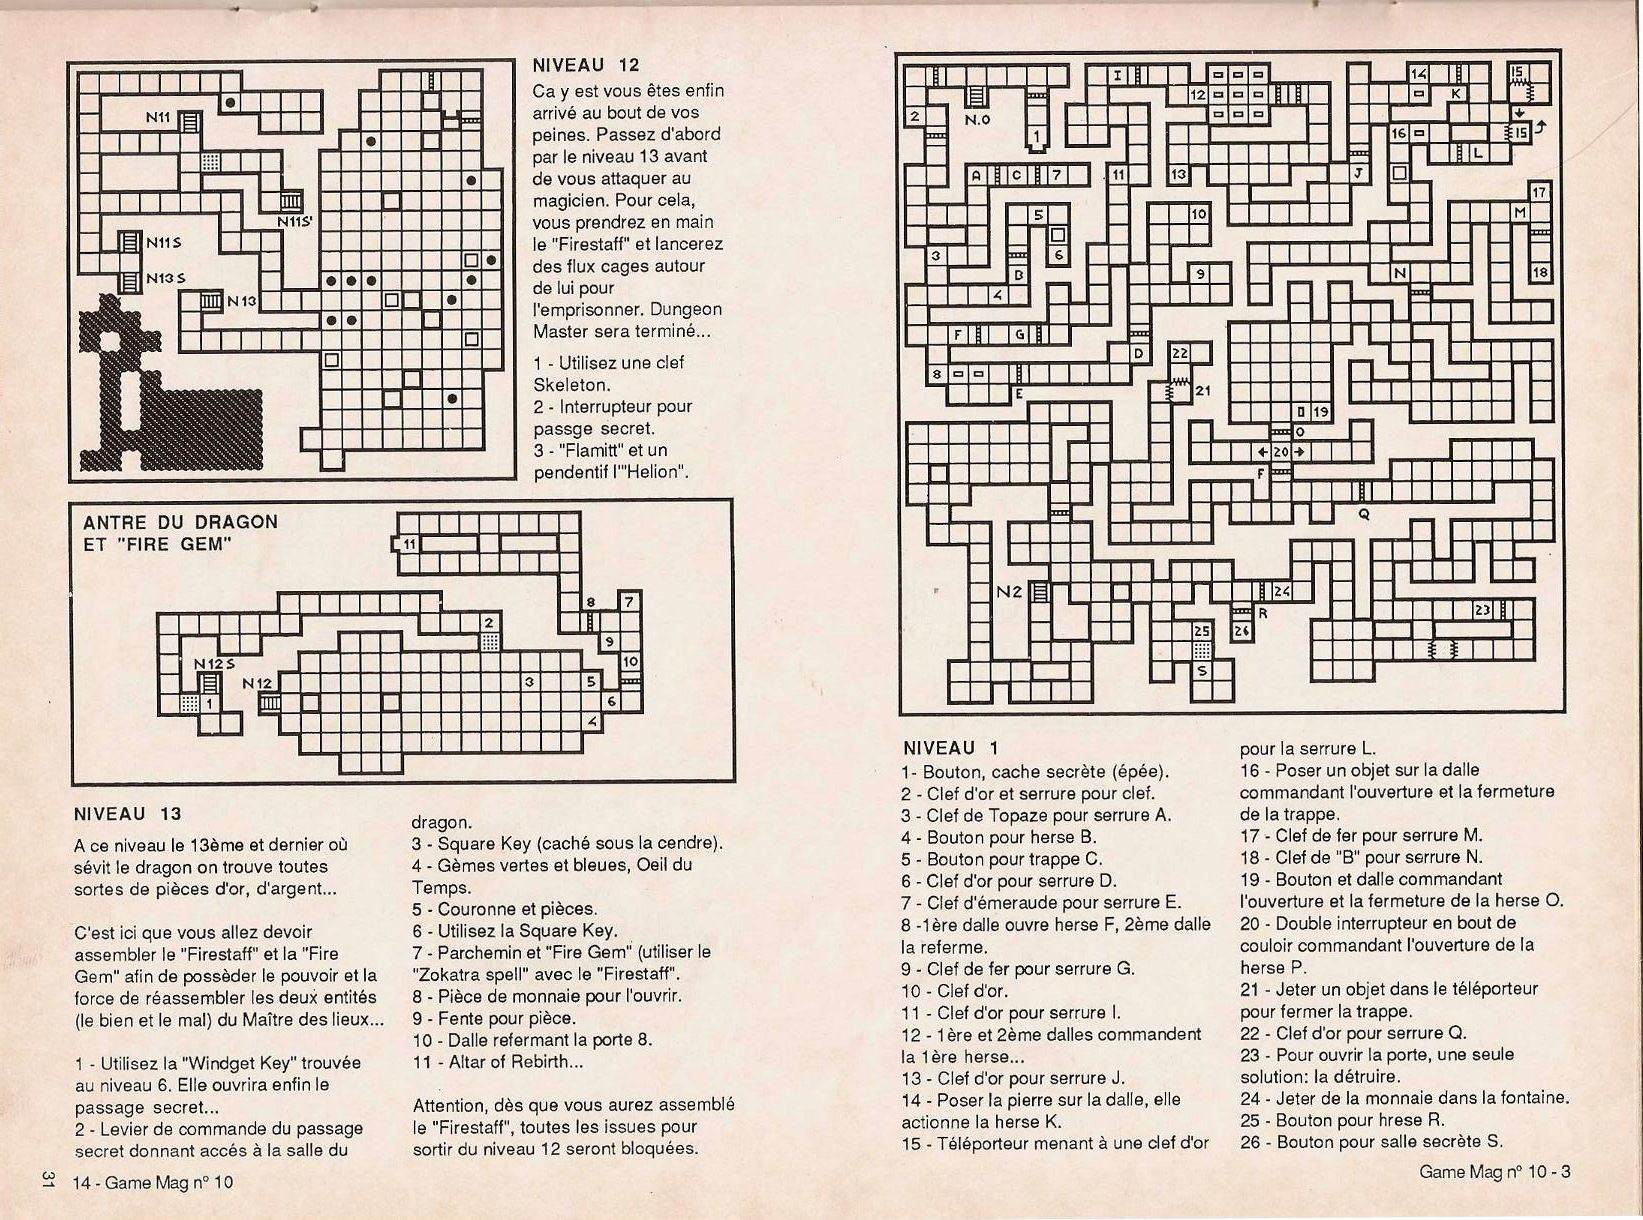 Dungeon Master Guide published in French magazine 'Game Mag', Issue #10 September 1988, Page 31